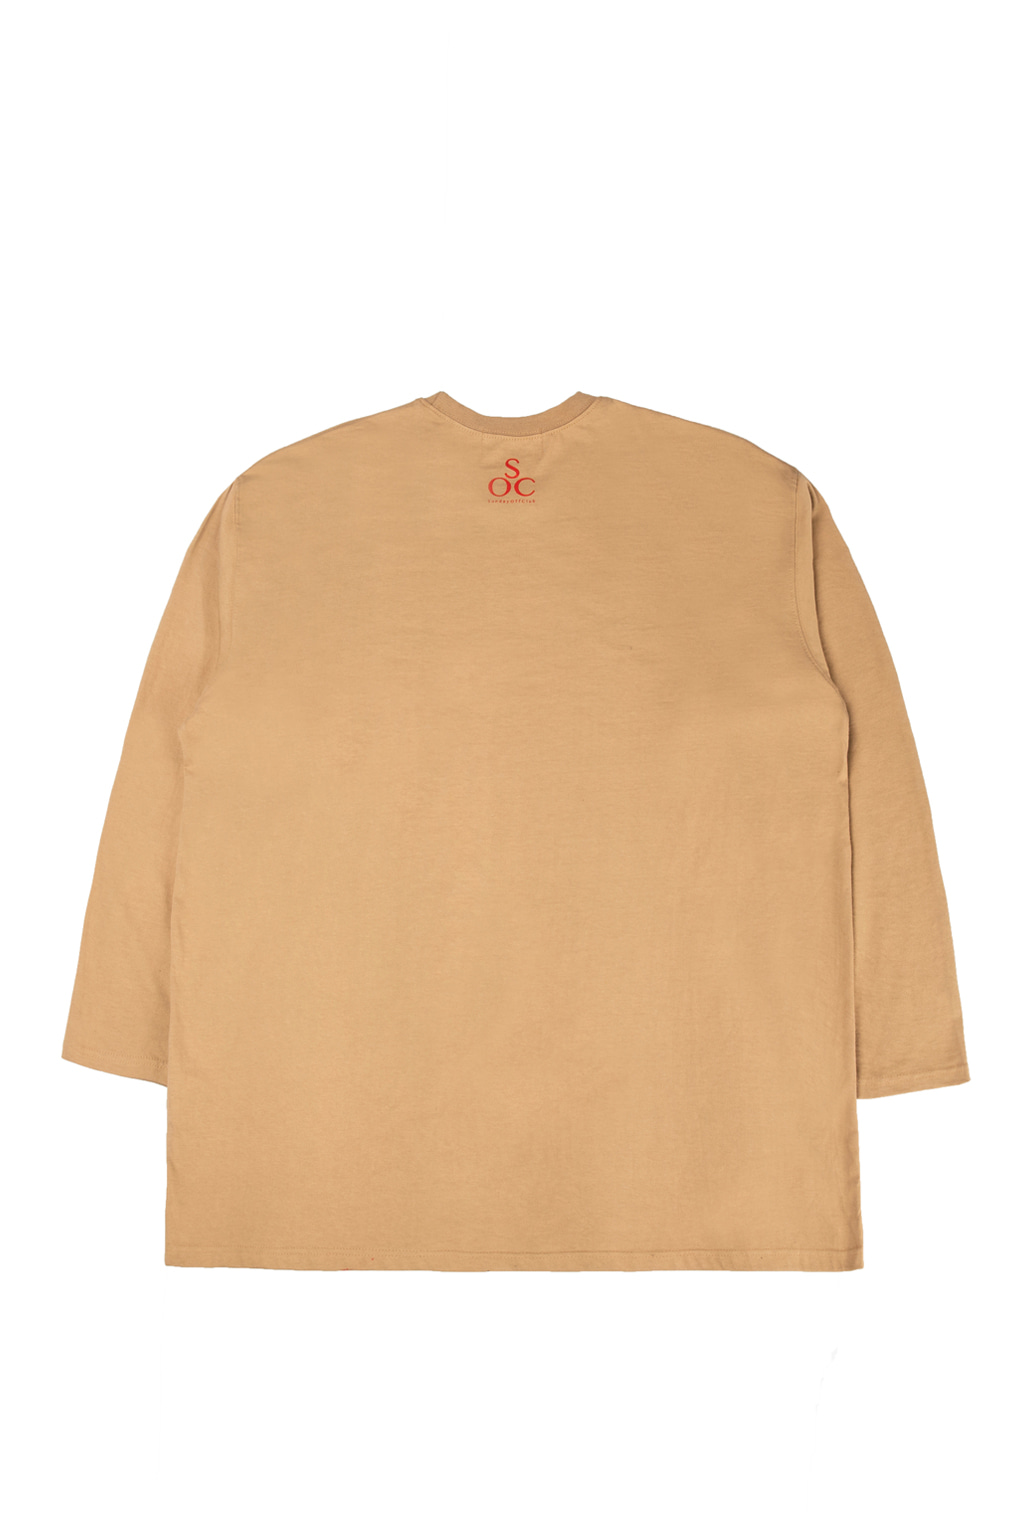 elvira long sleeve t-shirts - beige